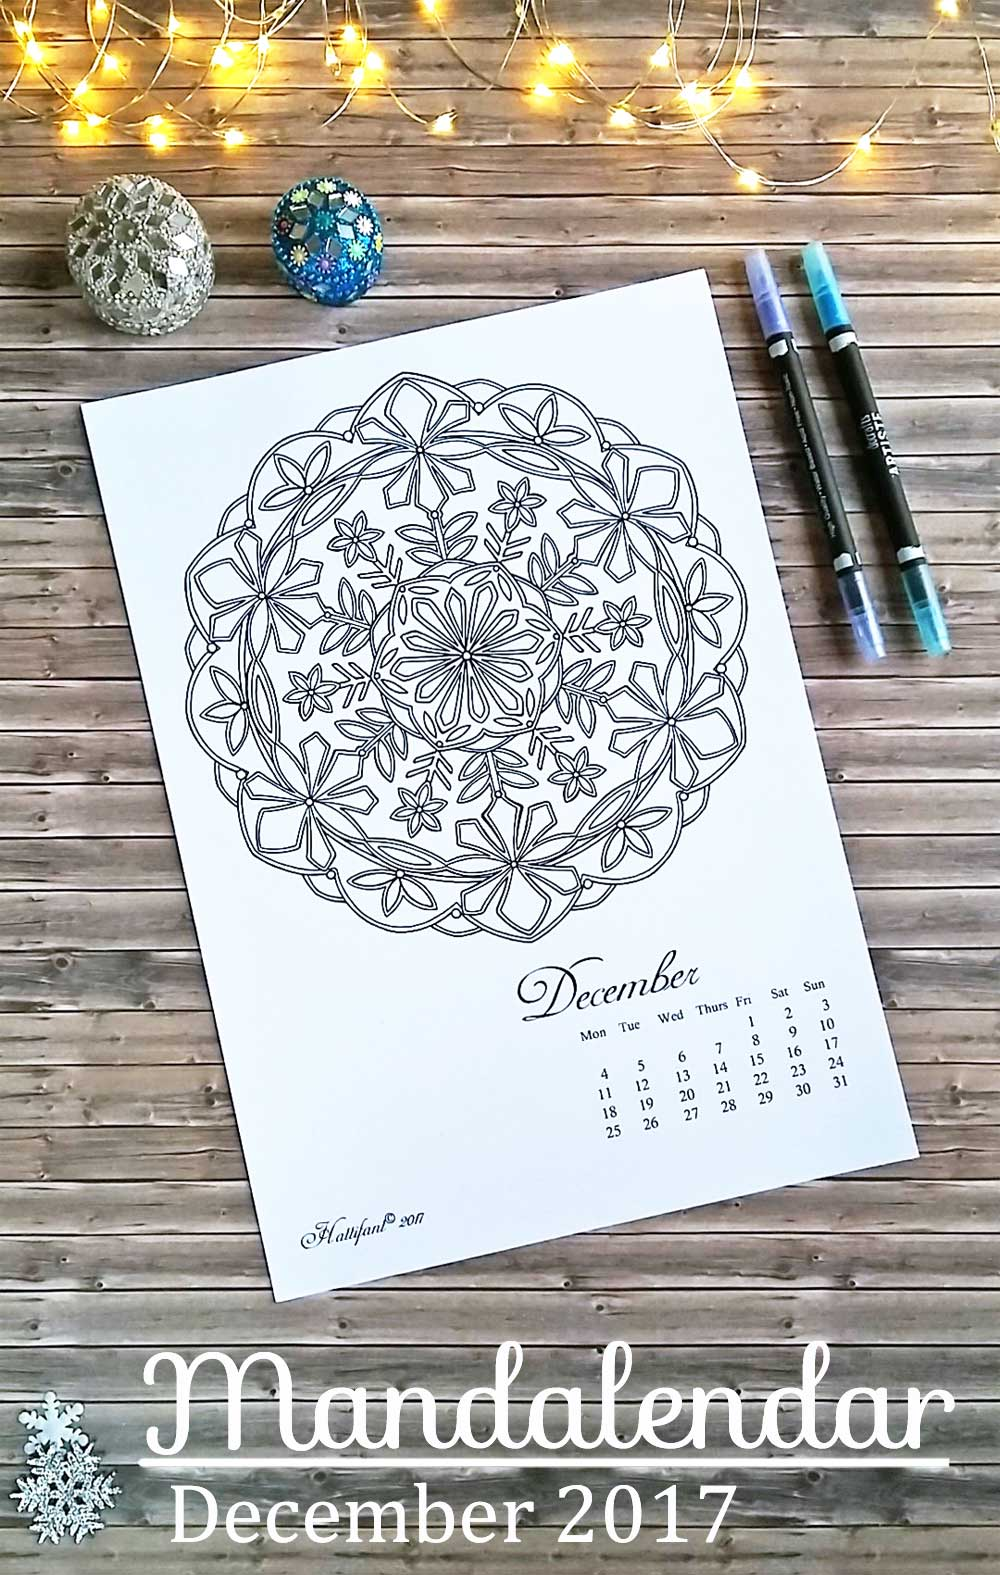 Hattifant's Mandalandar 2017 a Mandala Calendar Coloring Page to download for free during December